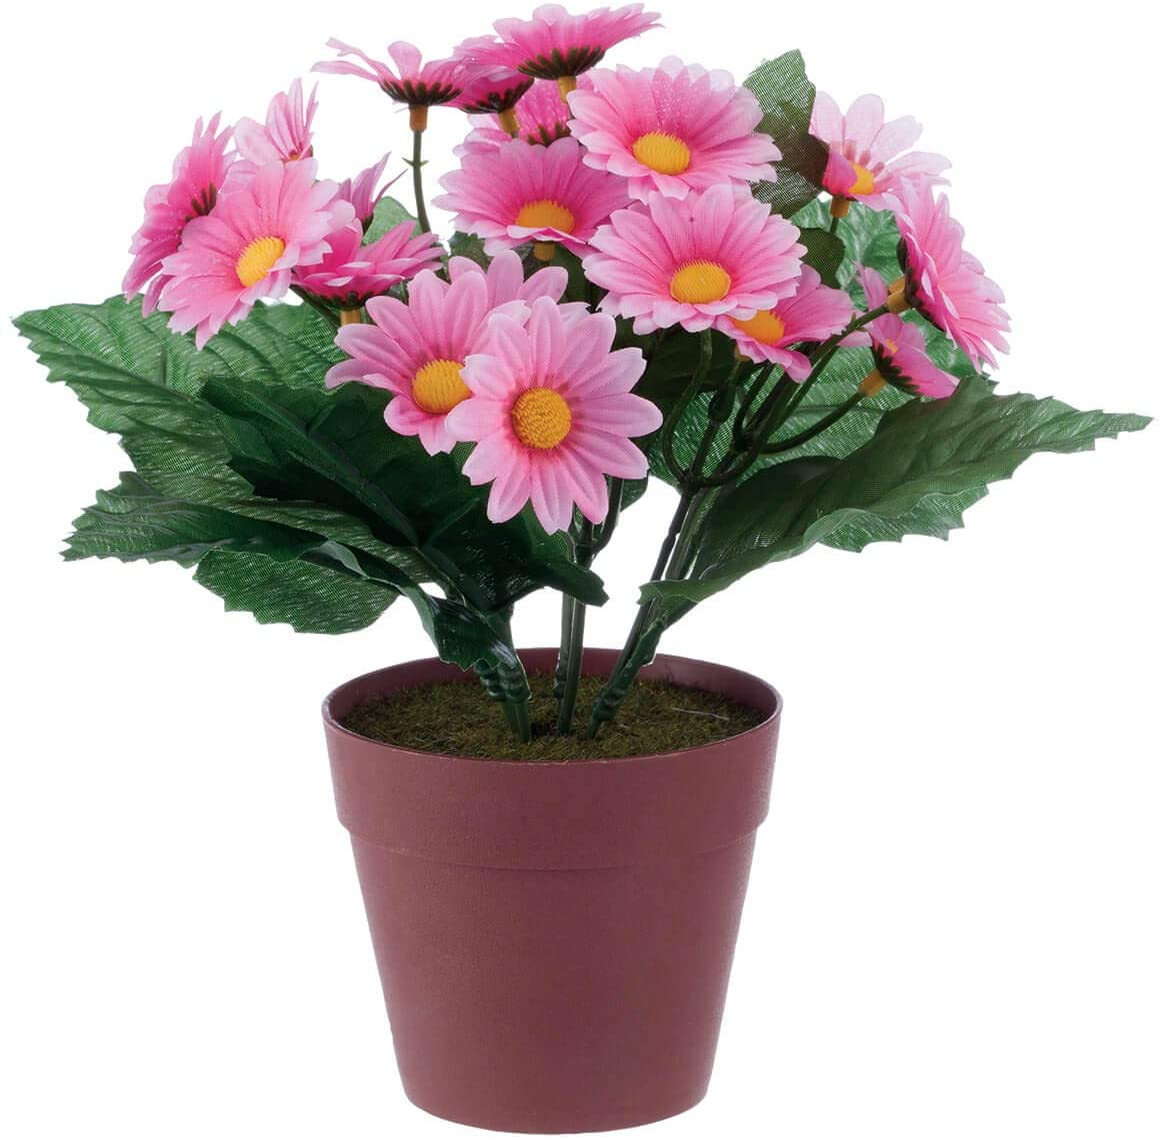 """OakRidge Mini Potted Daisy, Faux Plant in Resin Pot, Pink, 8 ½"""" High"""